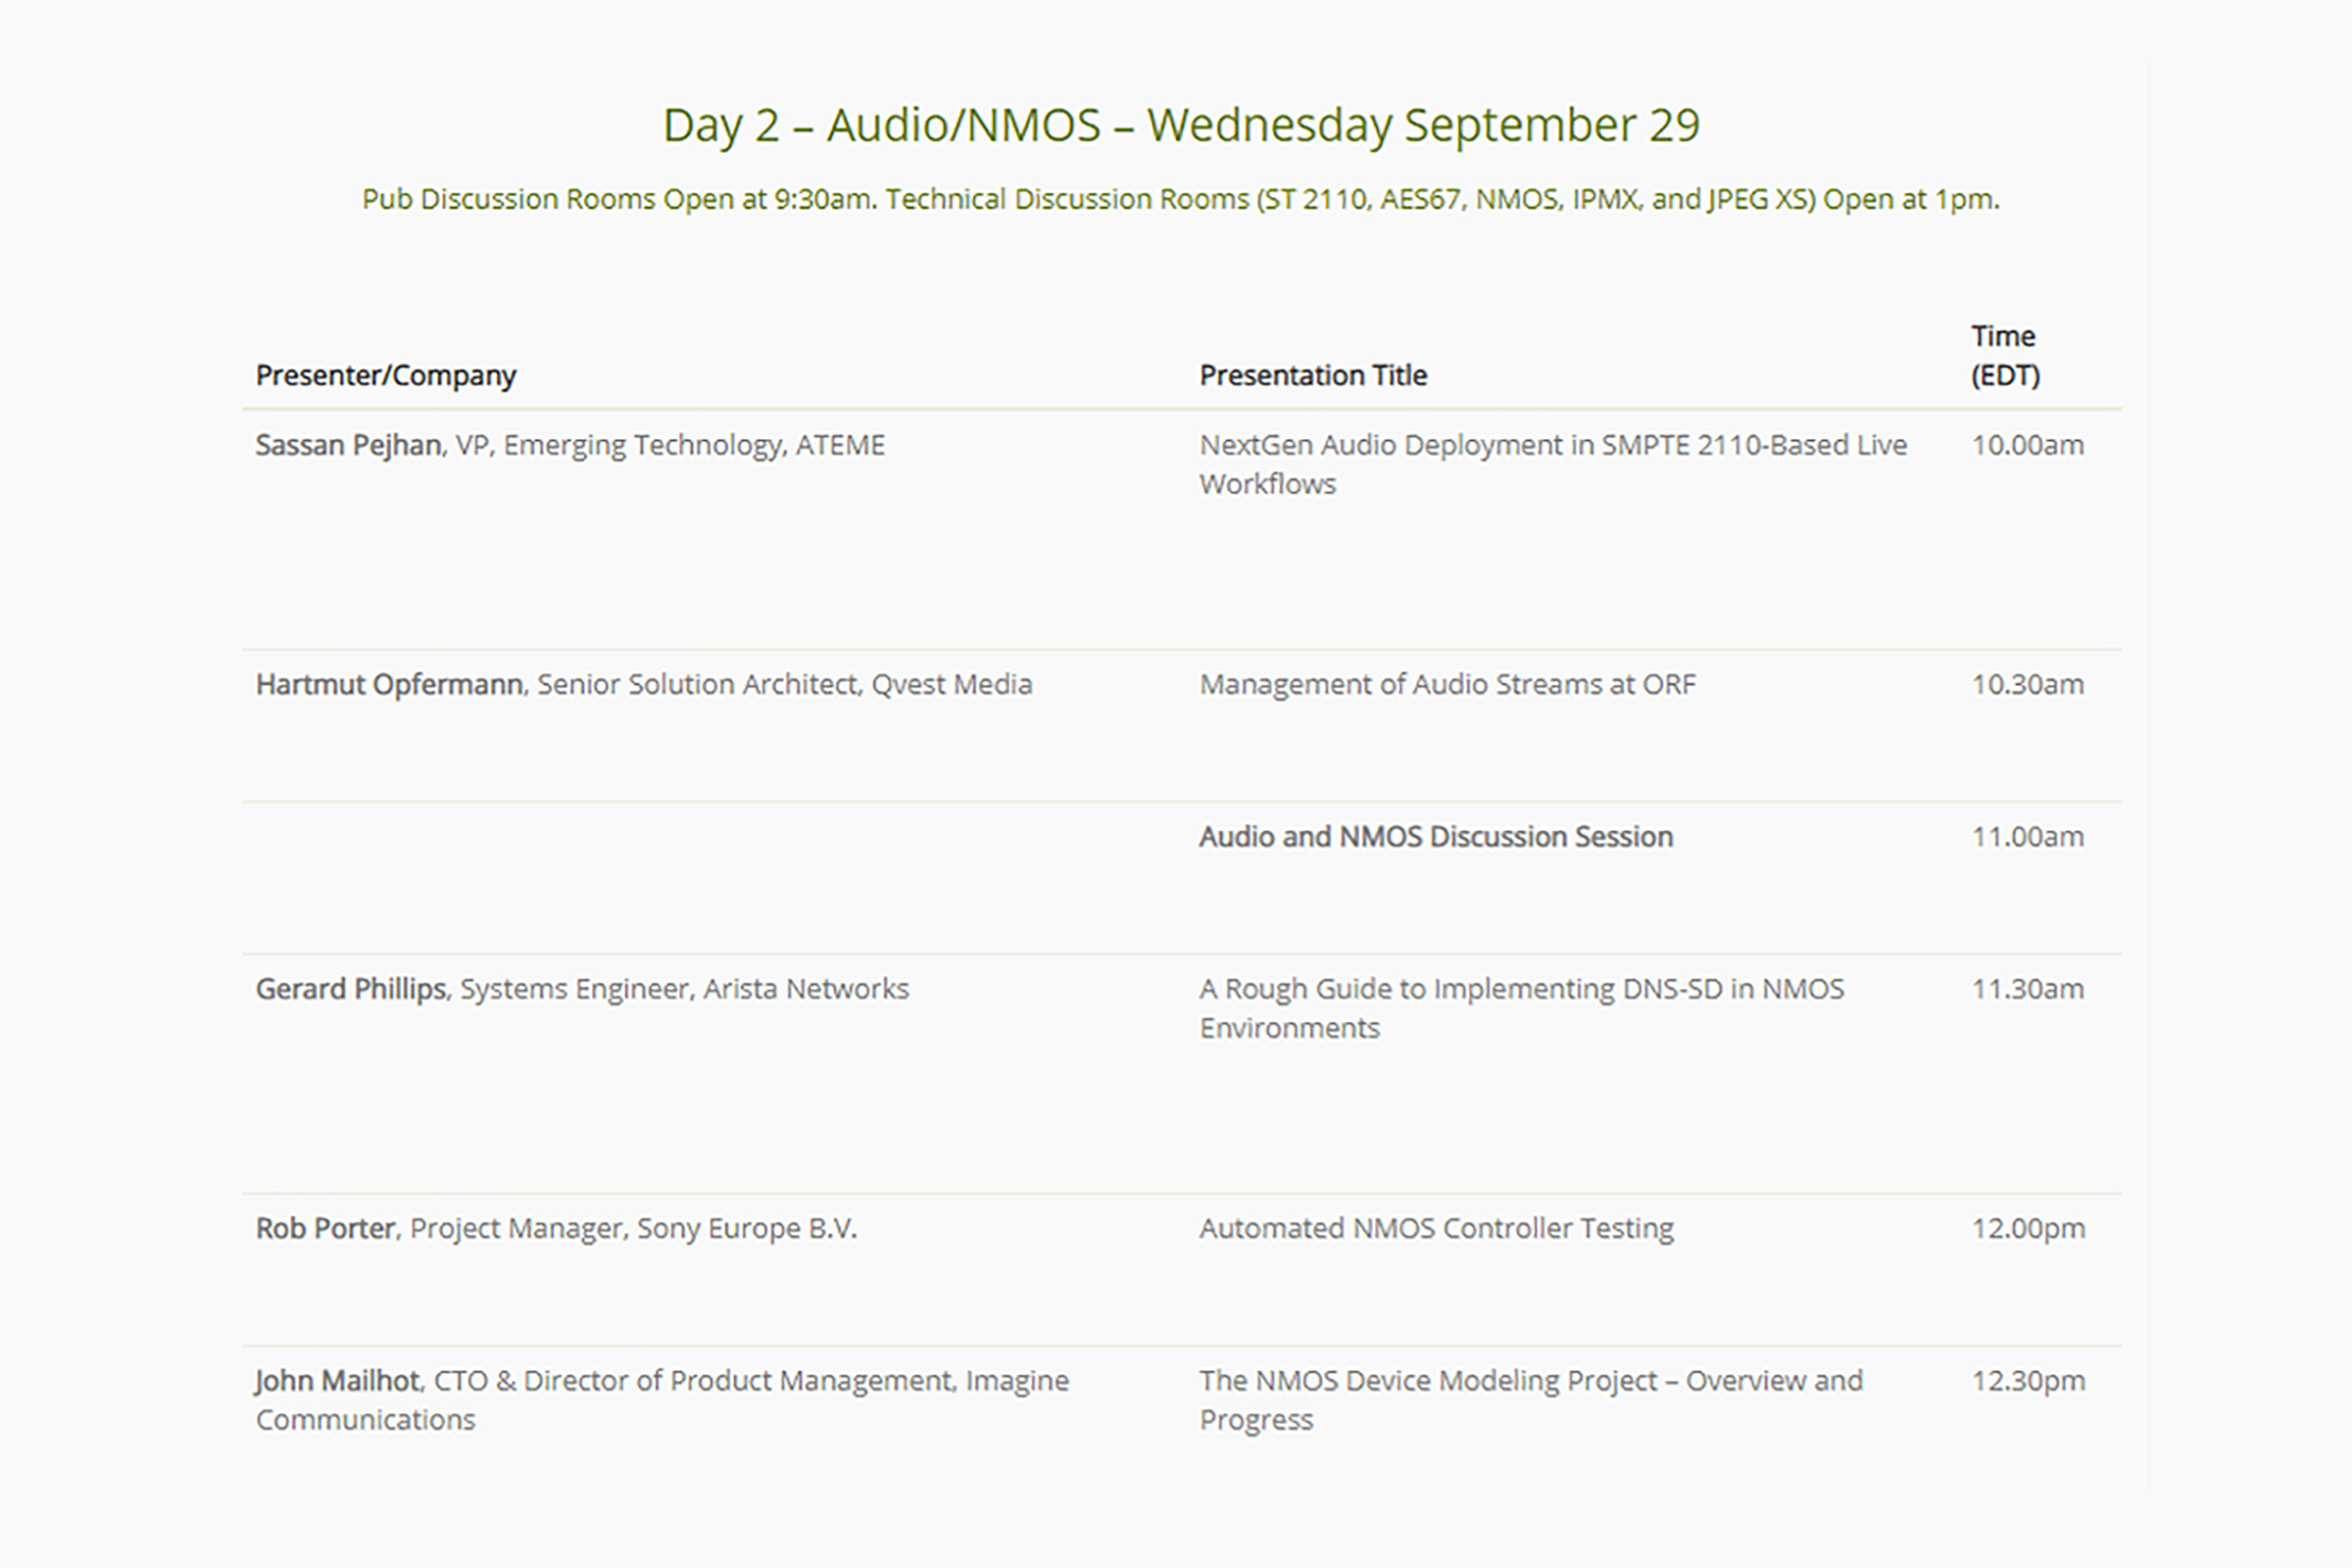 The Alliance for IP Media Solutions (AIMS) IP Oktoberfest 2021 day 2 speaker lineup and presentation schedule